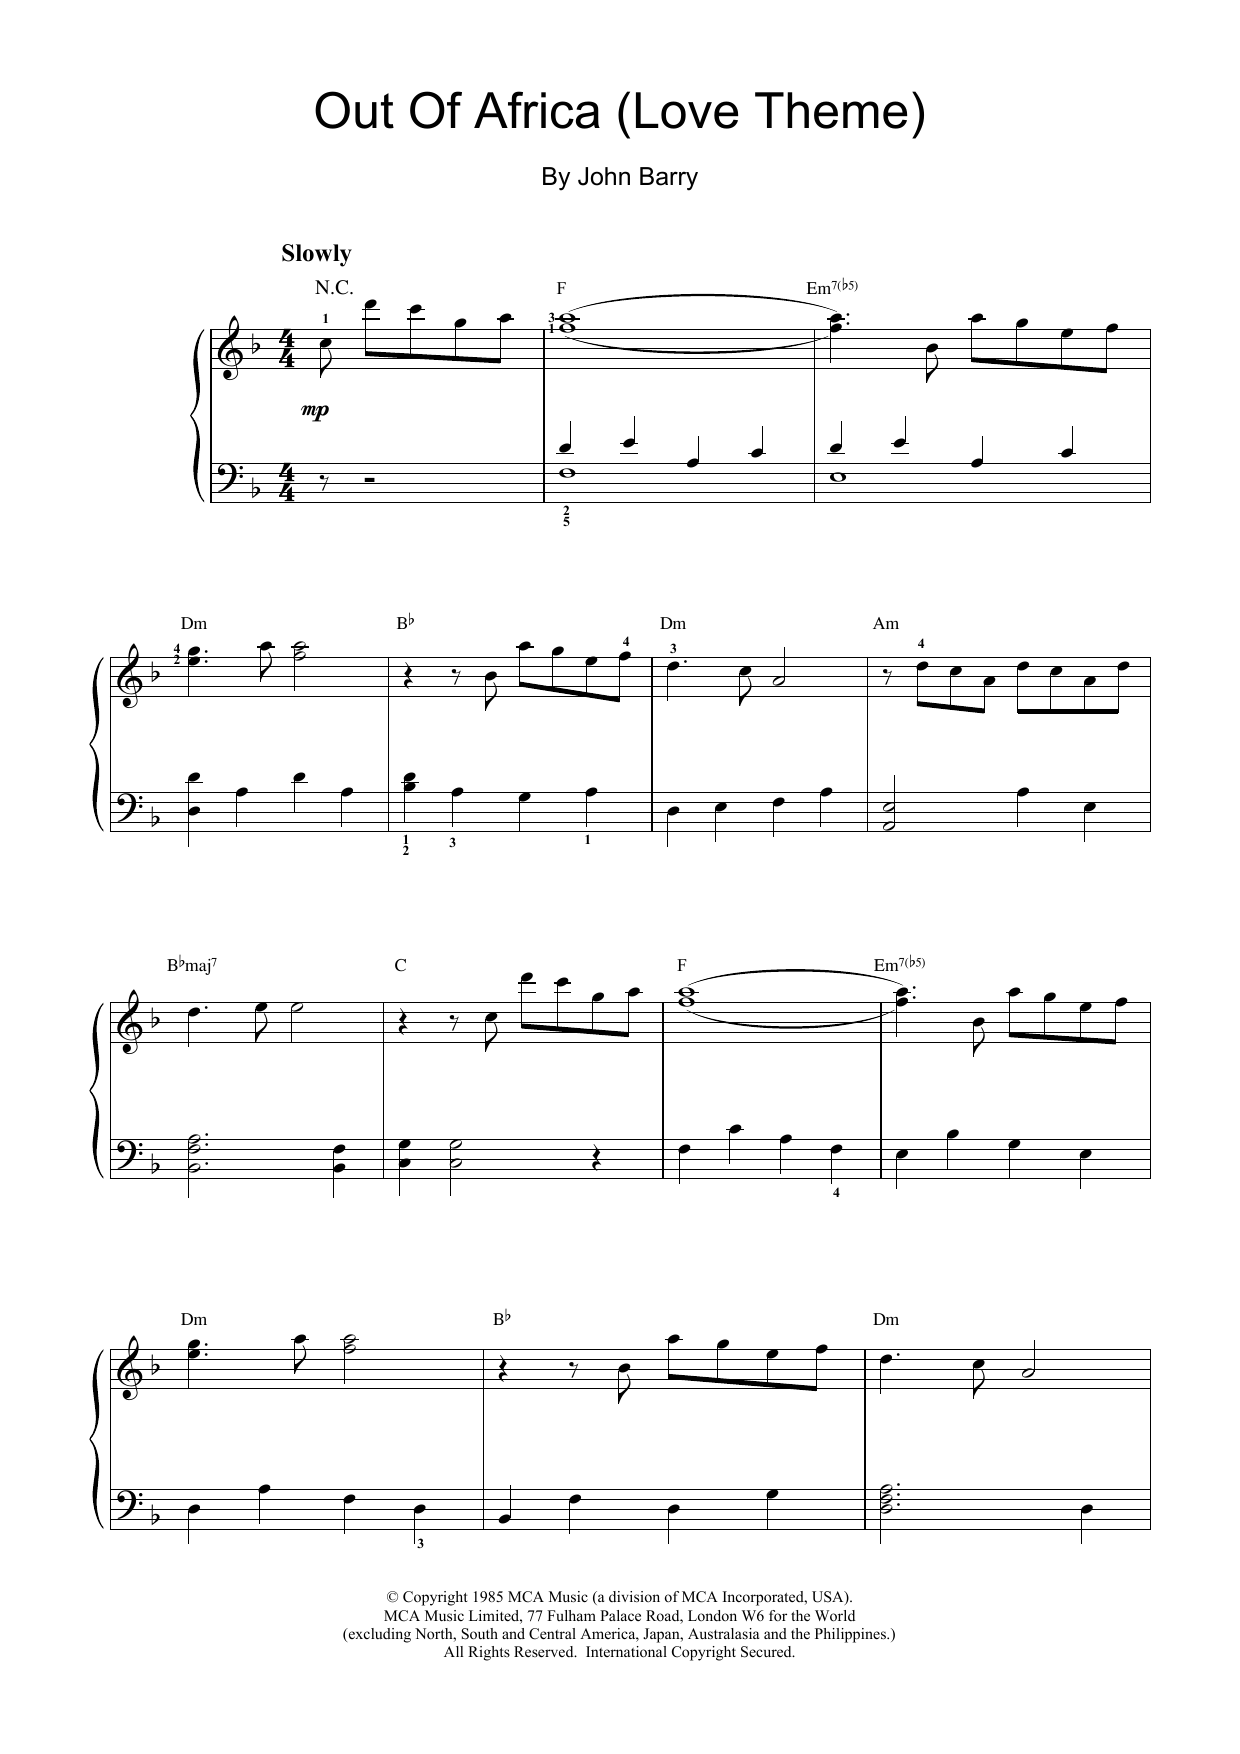 John Barry I Had A Farm In Africa (Main Title from Out Of Africa) sheet music notes and chords. Download Printable PDF.